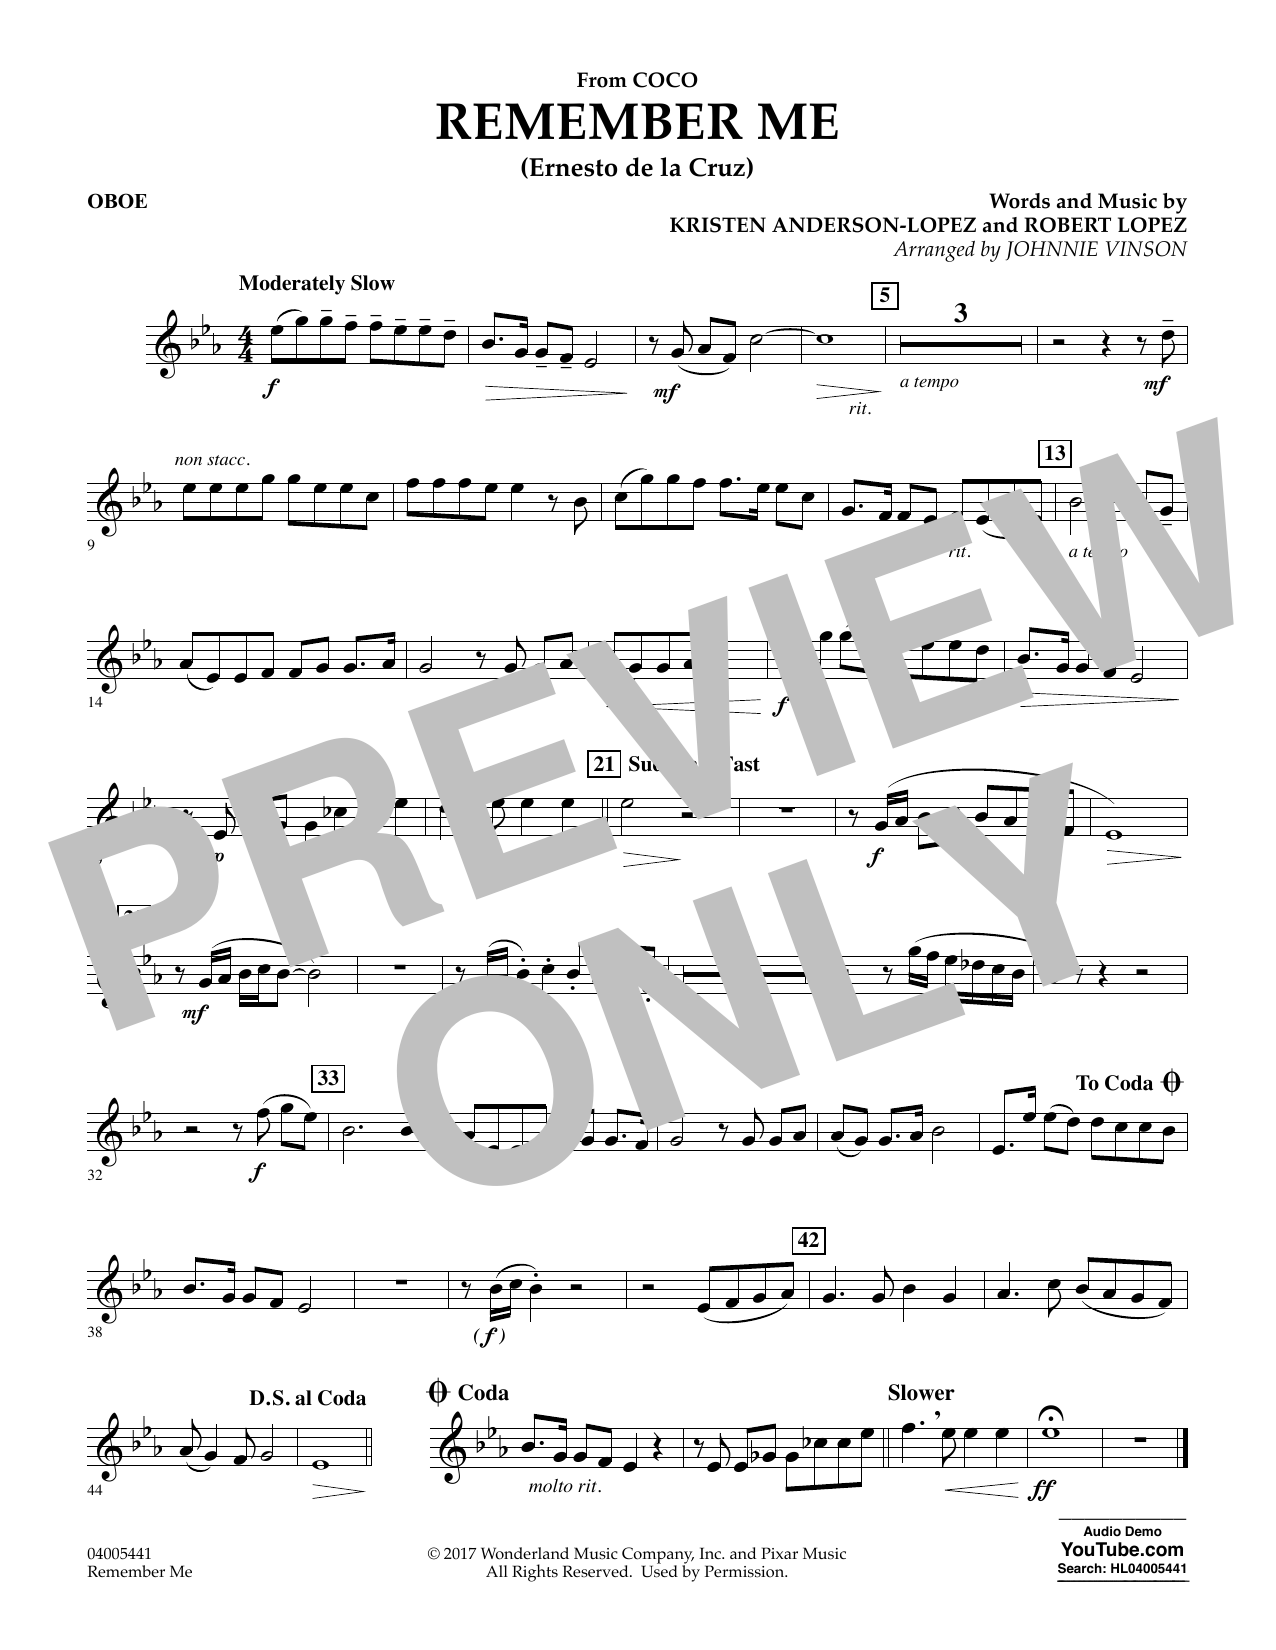 Kristen Anderson-Lopez & Robert Lopez Remember Me (from Coco) (arr. Johnnie Vinson) - Oboe sheet music notes and chords. Download Printable PDF.